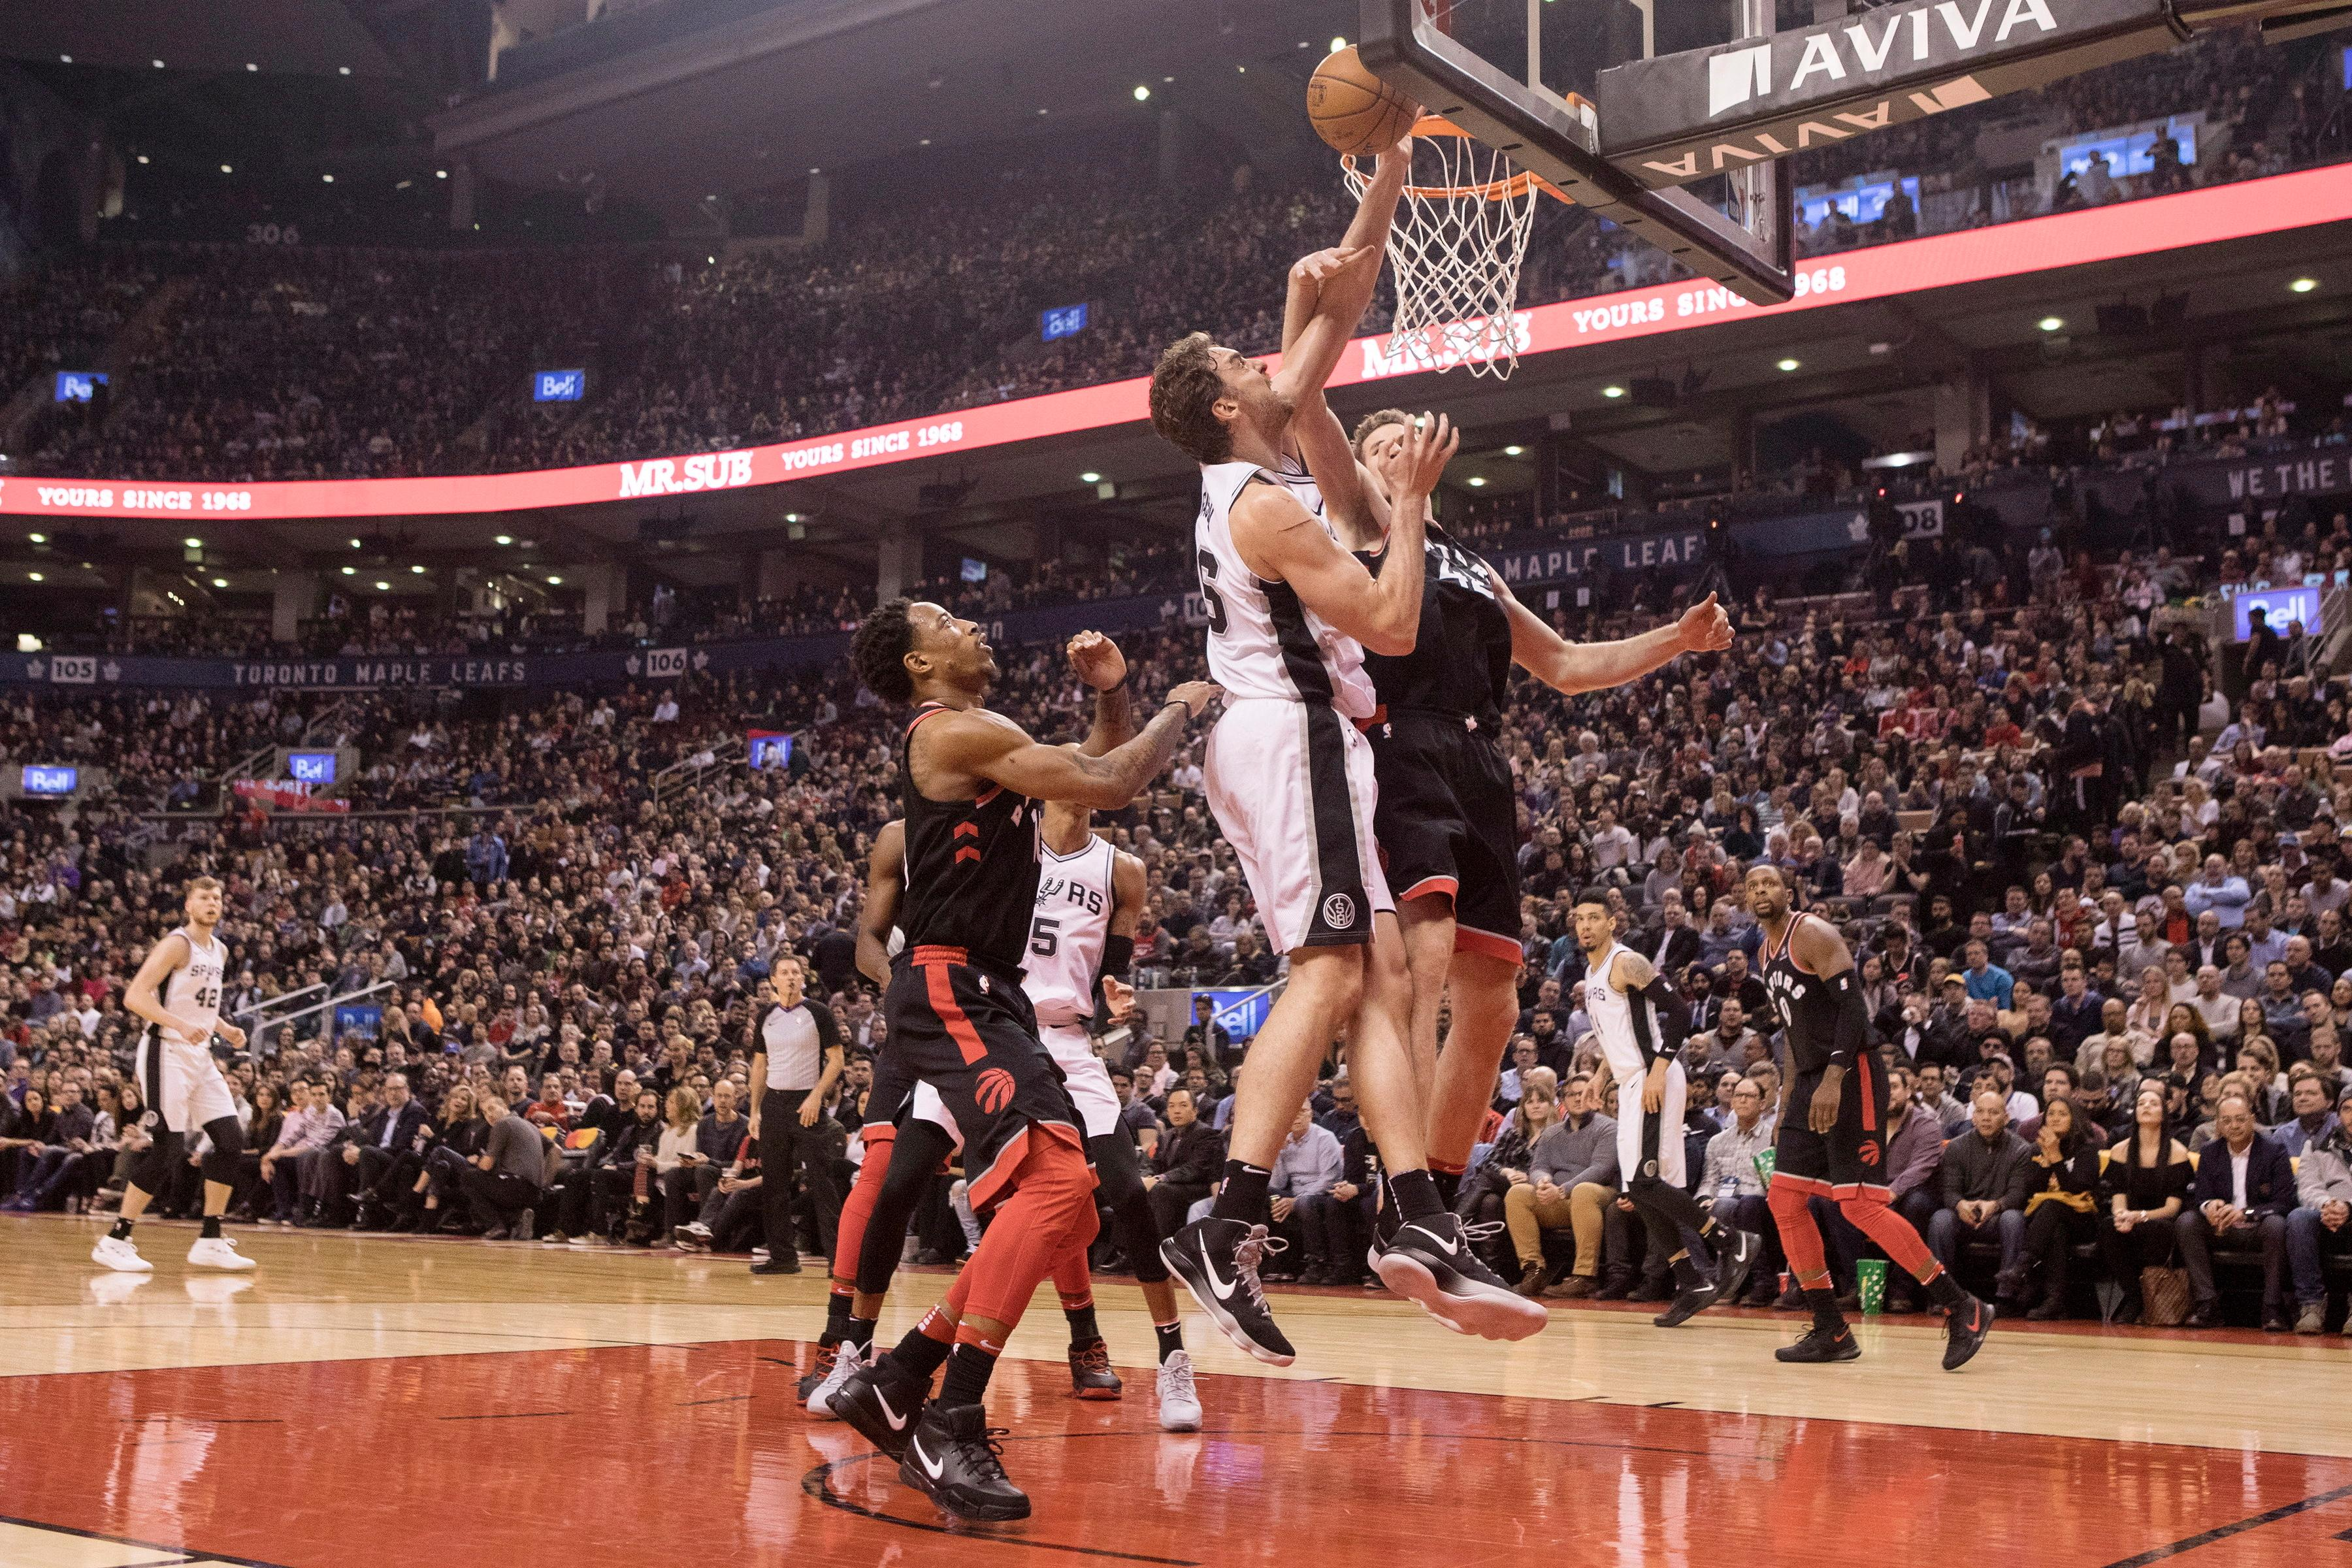 San Antonio Spurs center Pau Gasol (16) goes up for a shot as Toronto Raptors center Jakob Poeltl (42) defends during the first half of an NBA basketball game Friday, Jan. 19, 2018, in Toronto. (Chris Young/The Canadian Press via AP)